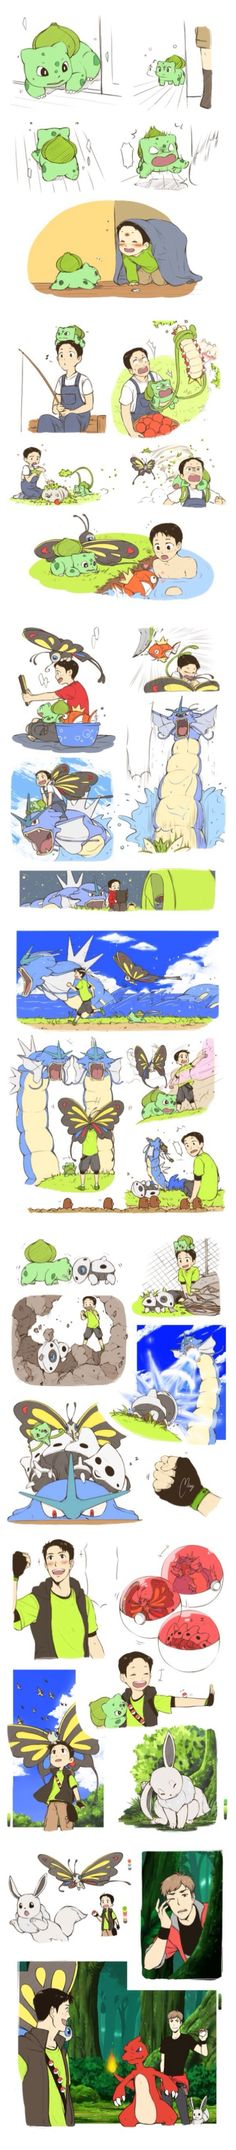 Pokémon and attack on titan crossover